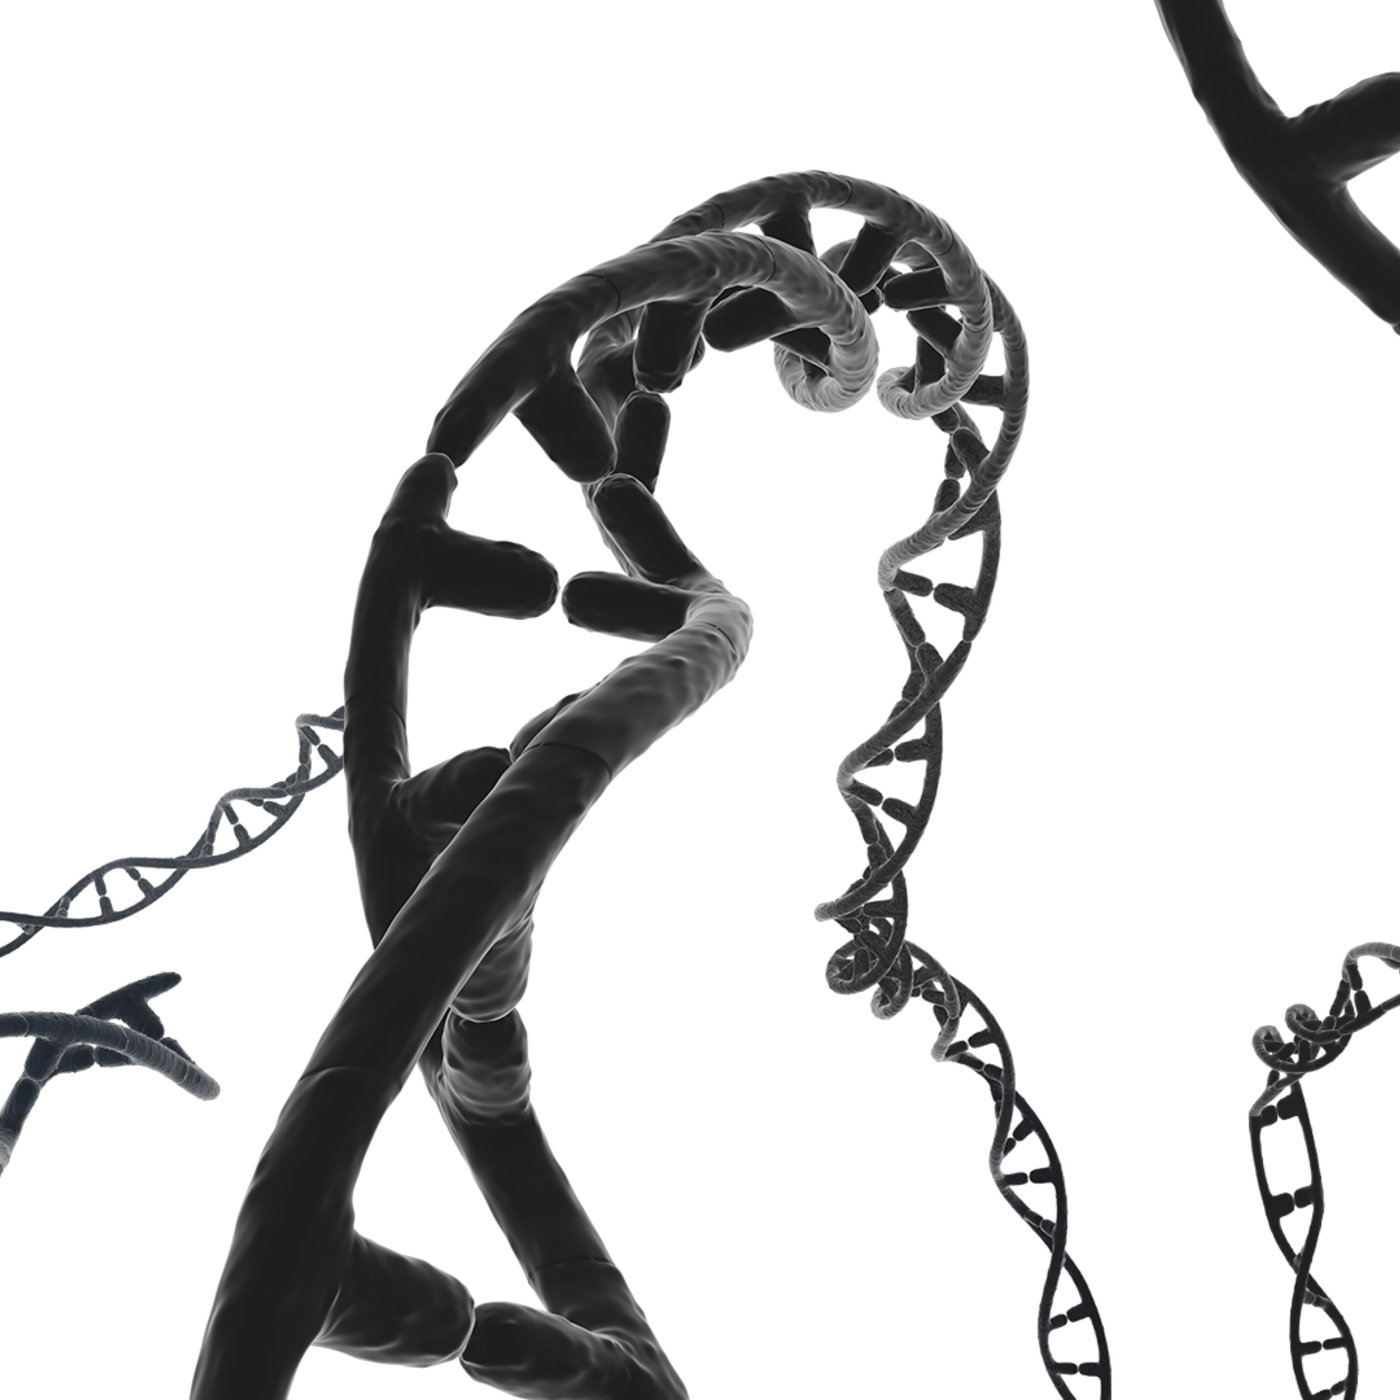 Dna set of 3D models with shape keys - textures - material - 28 bio alpha brushes - 29 photoshop brushes